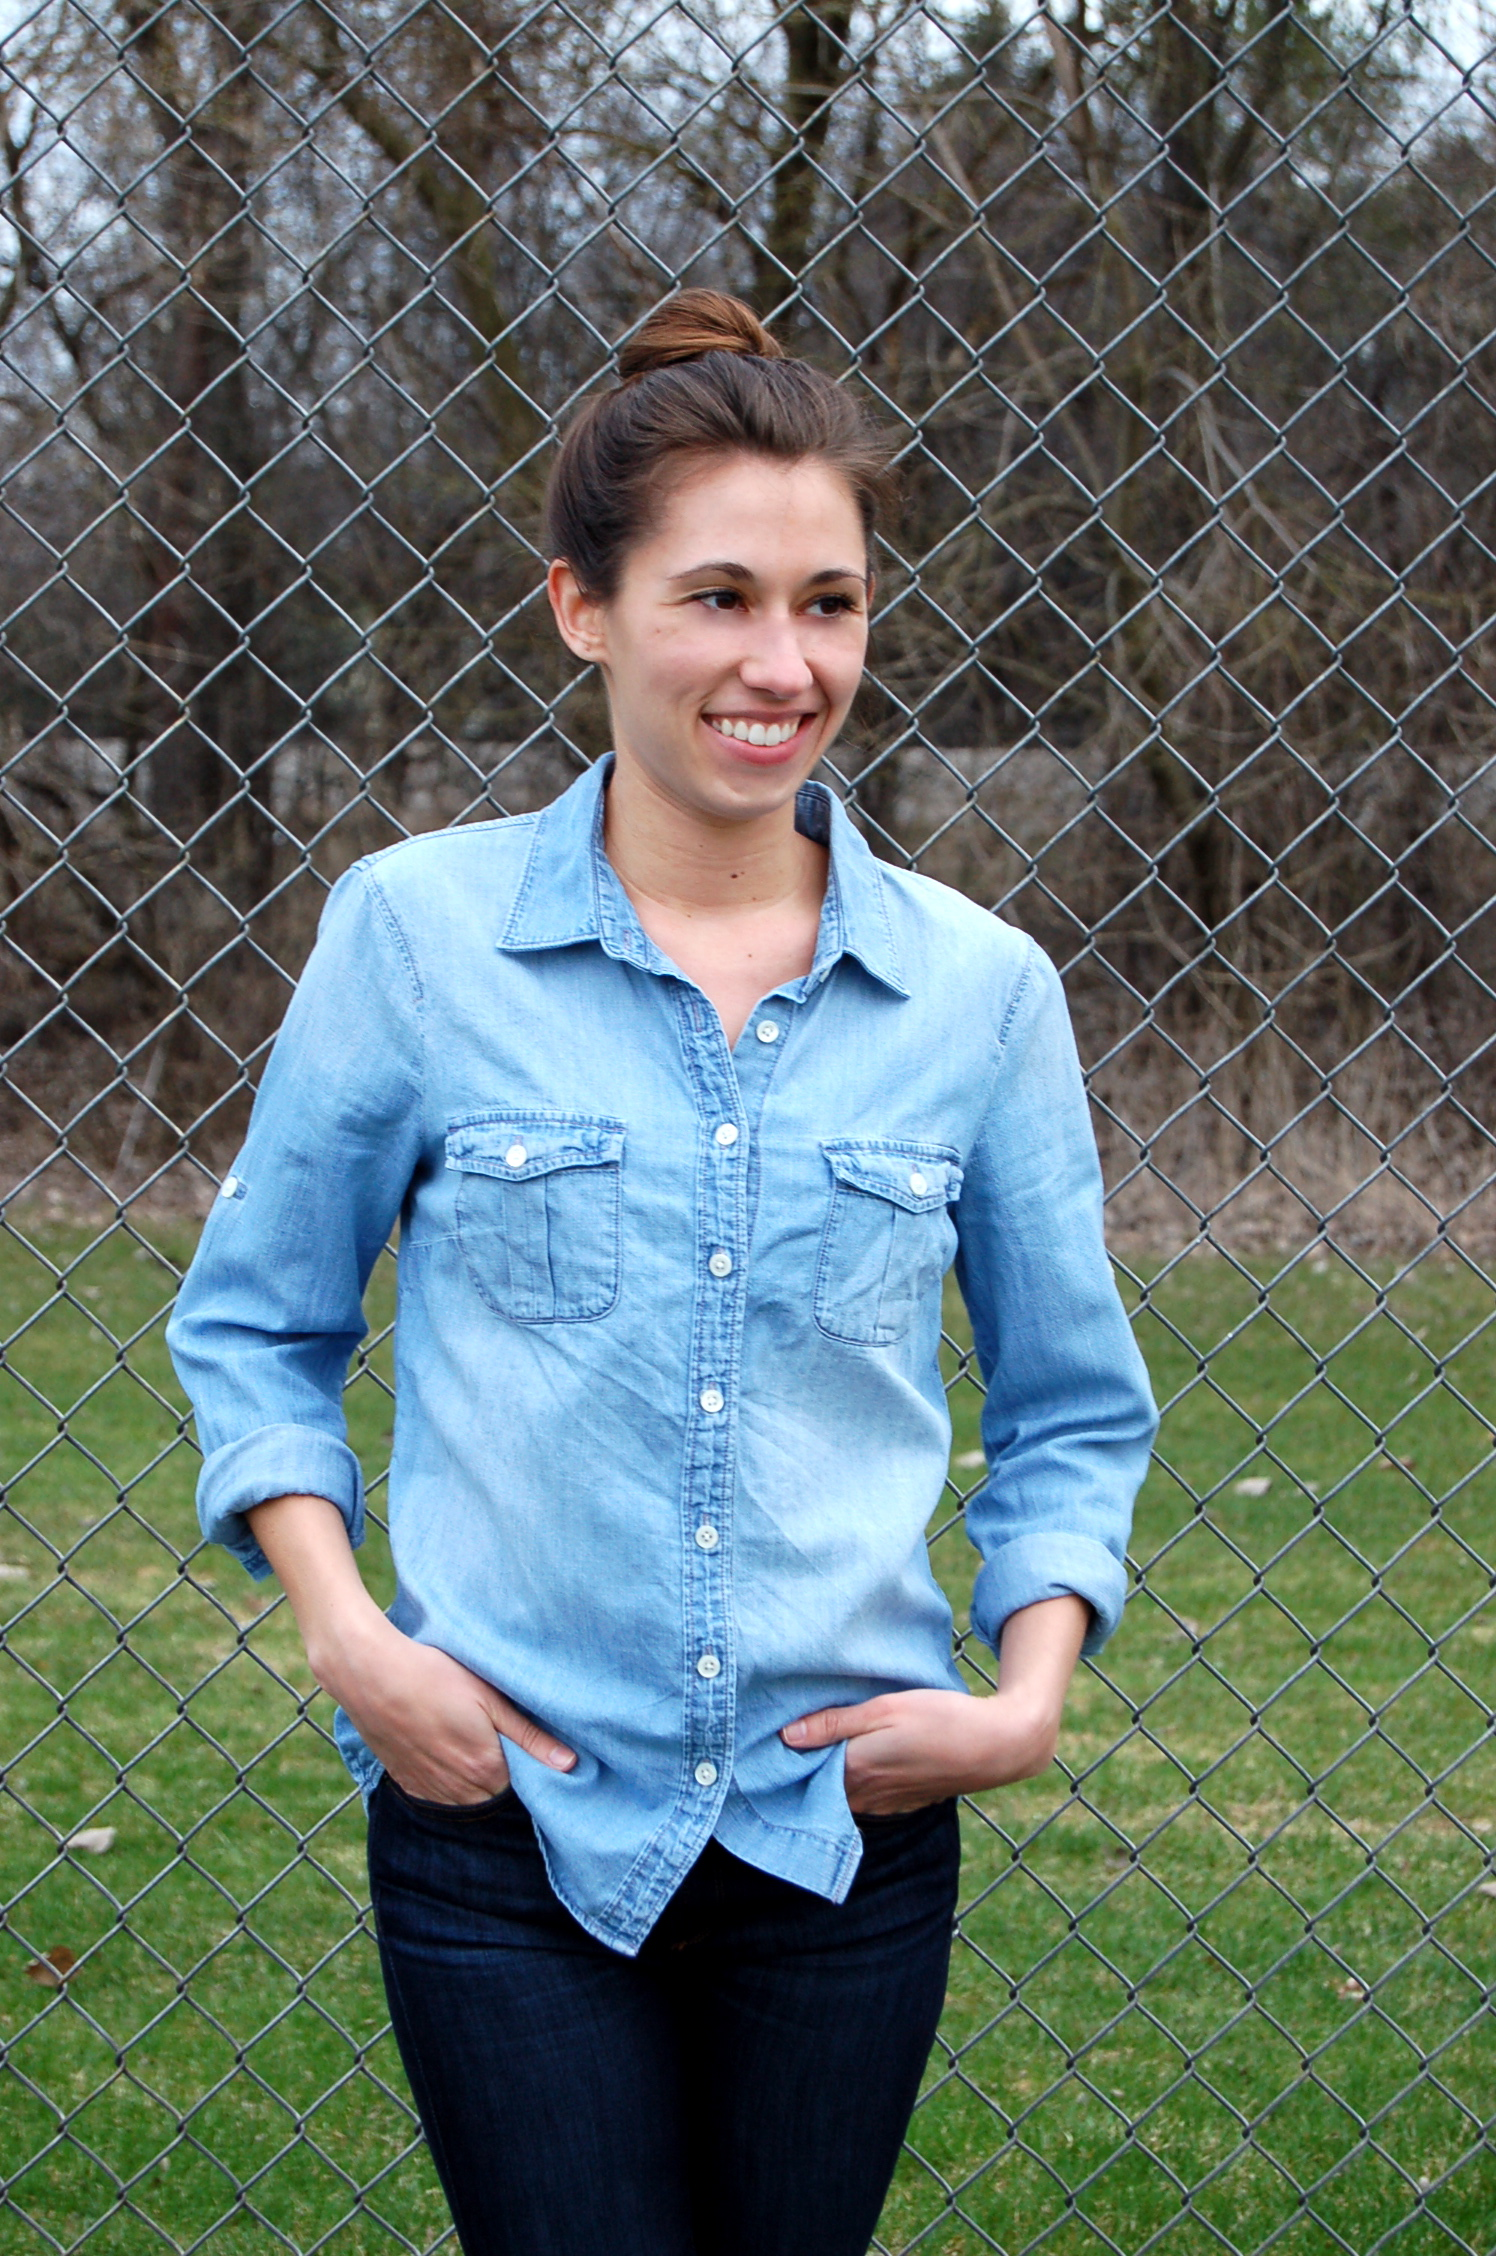 fe864869 j.crew chambray outfit, chambray shirt outfit, all denim look, simple  fashion